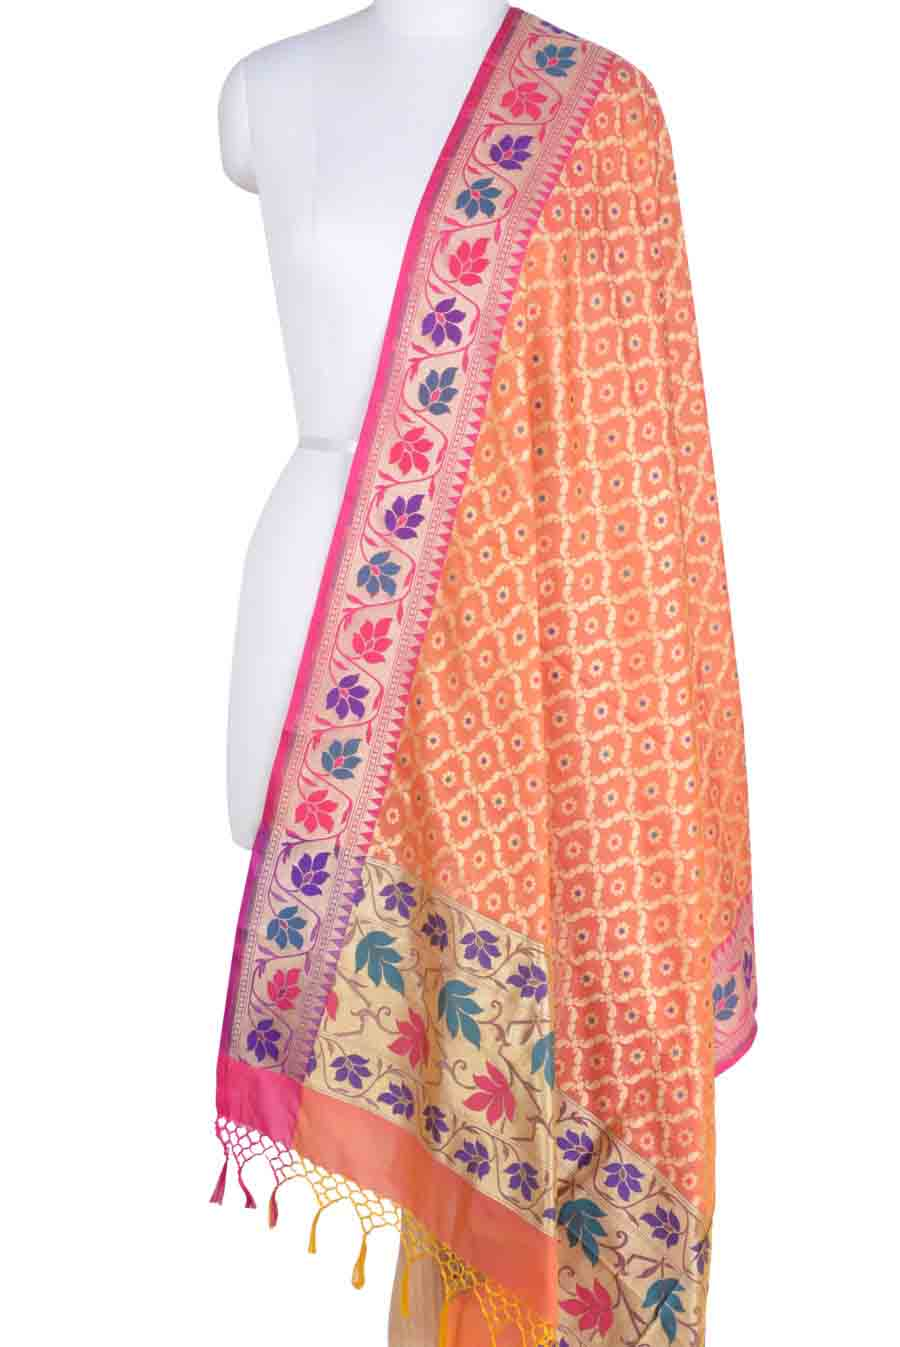 Orange Banarasi Dupatta with leaf jaal and floral motifs (1) Main